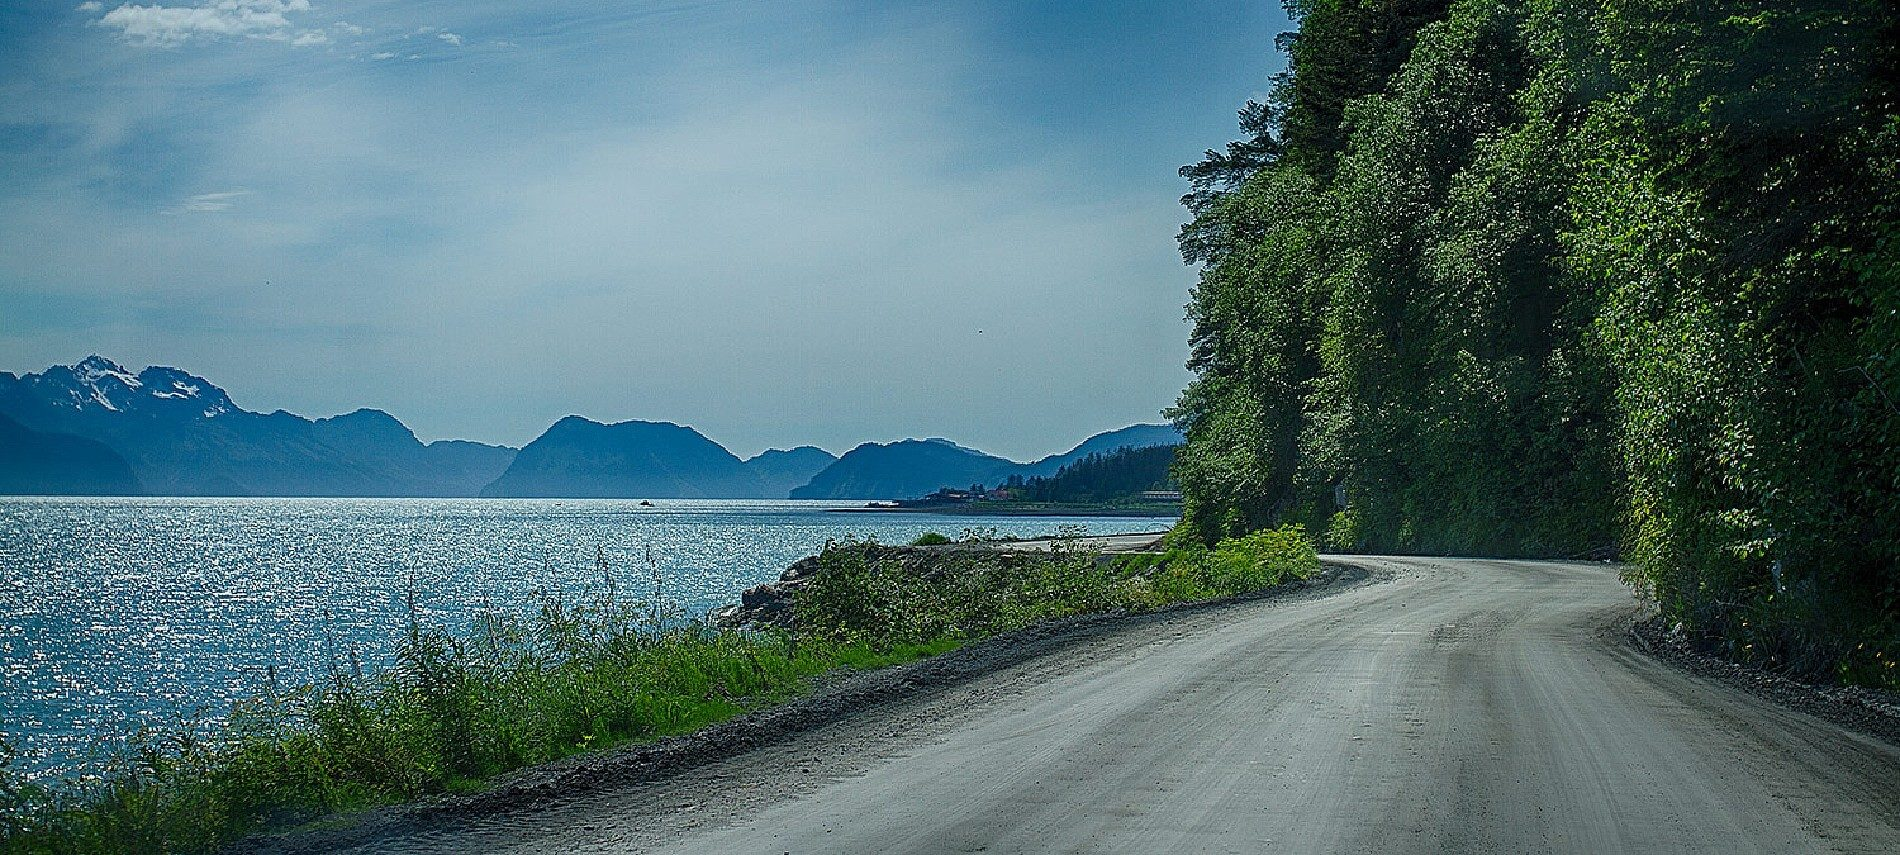 Empty winding road next to wooded area following the edge of a large bay surrounded by a mountain range